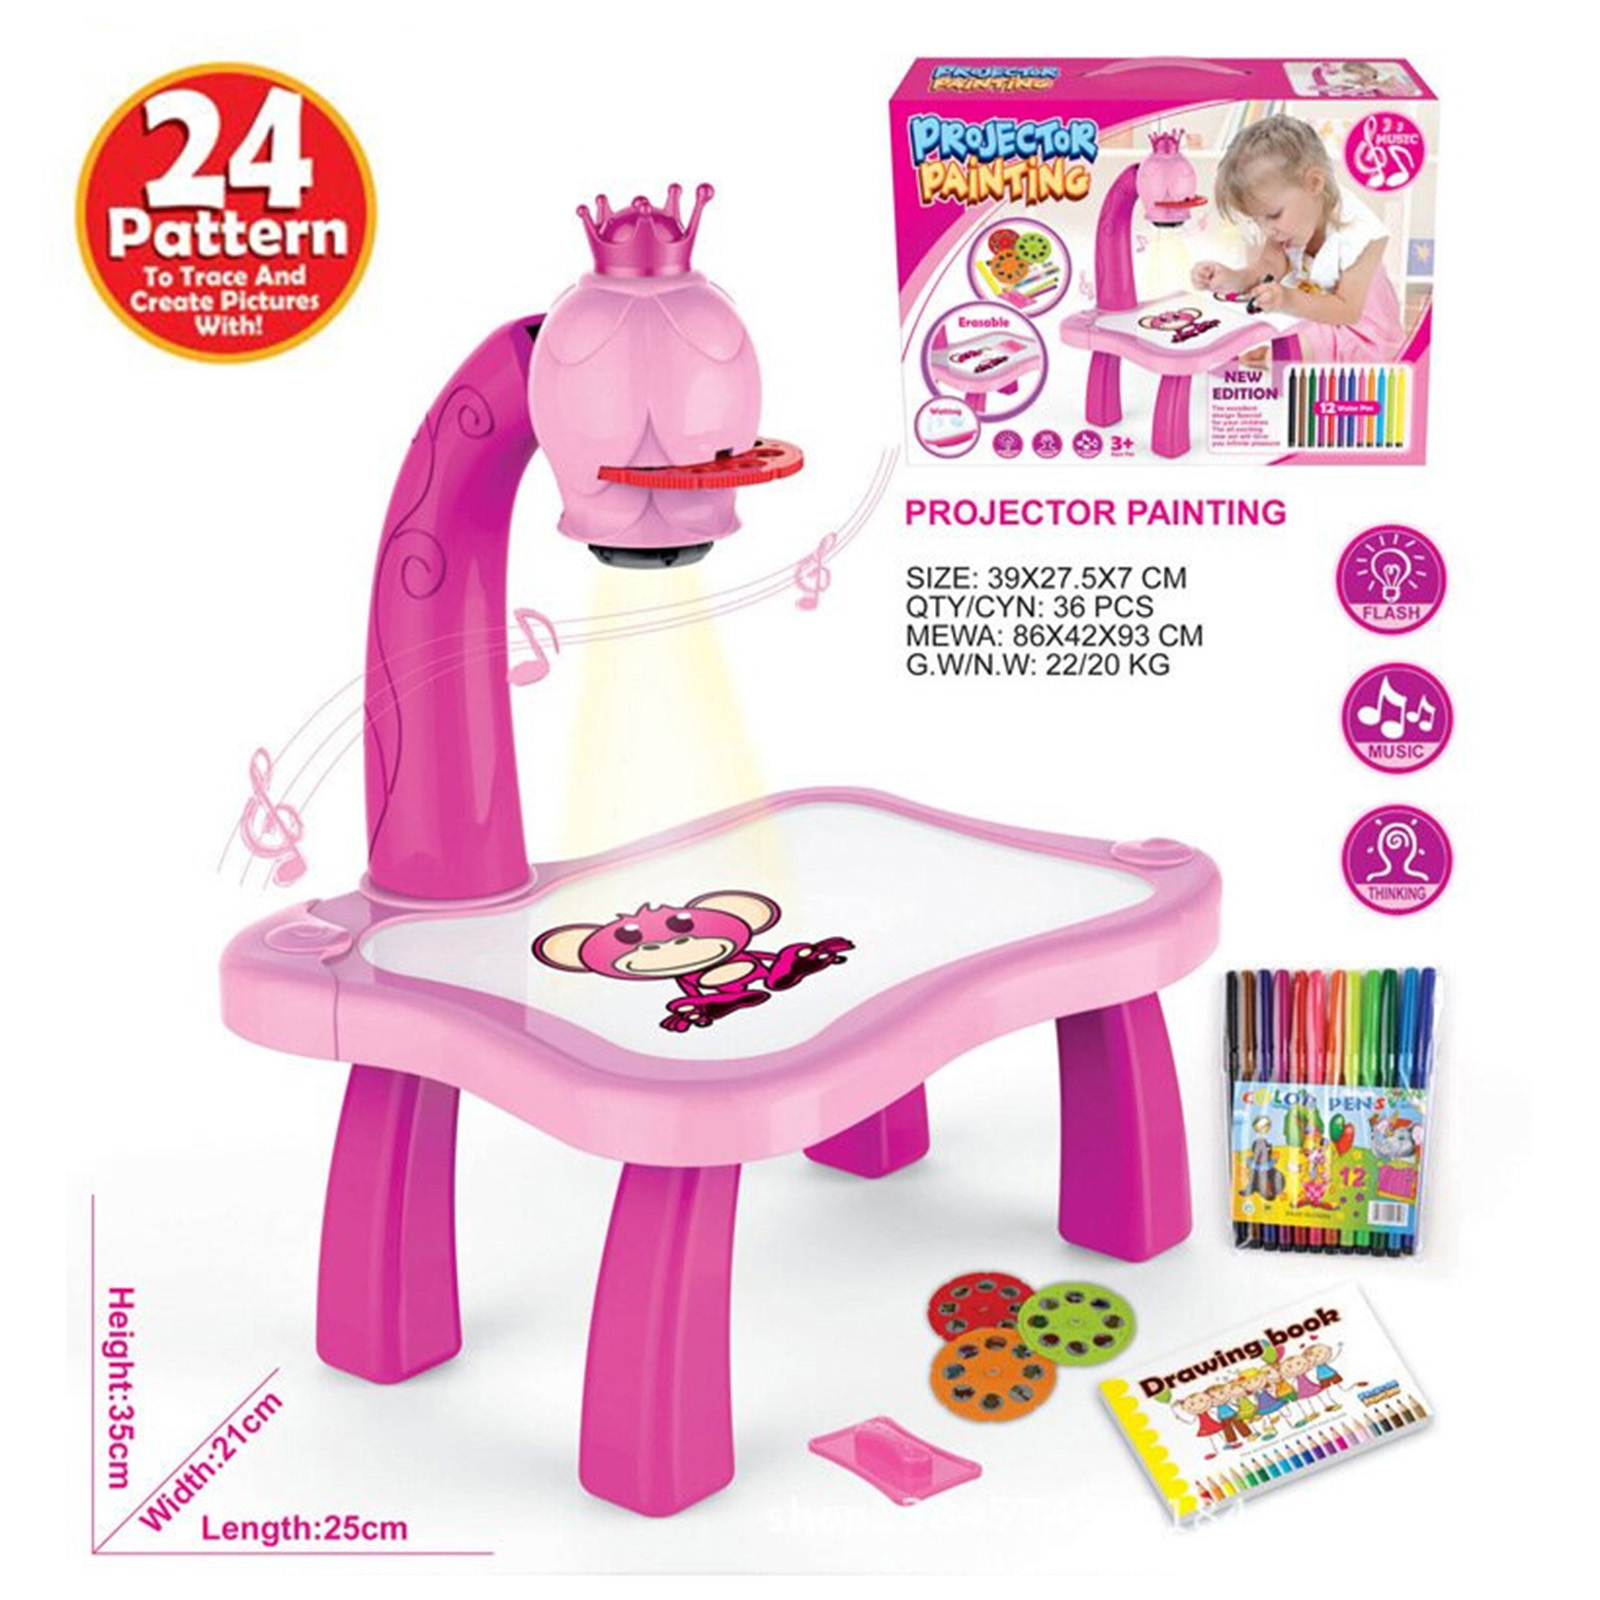 Trace and Draw Projector Toy Kids Drawing Projector Table Child Learning Desk with Smart Projector with Light Music GDeals